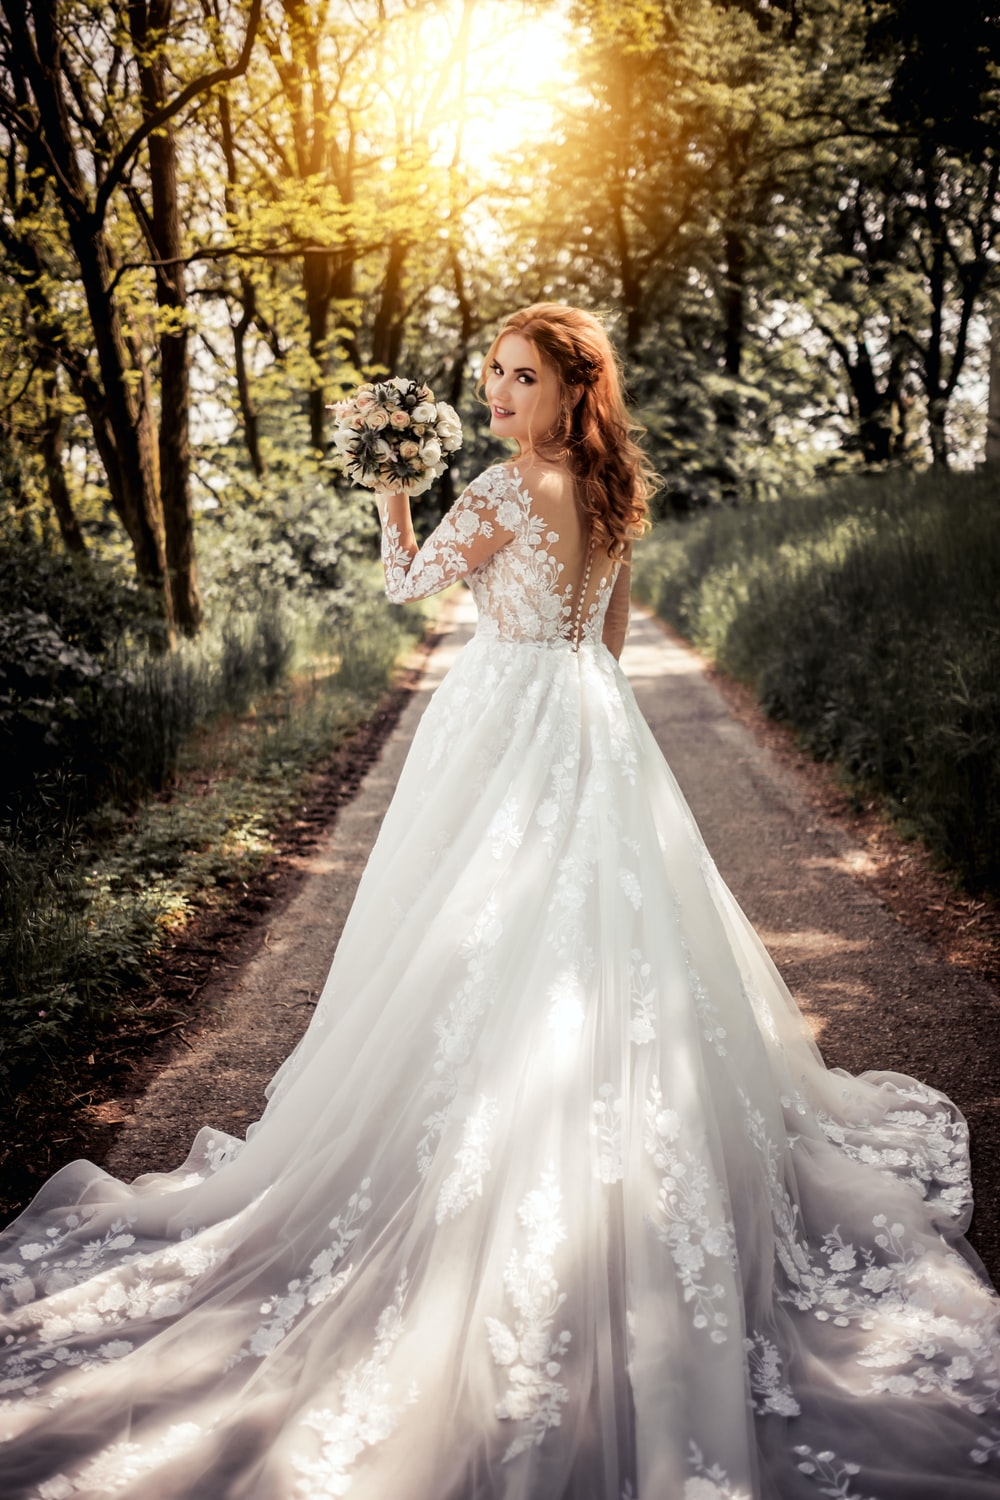 9+ Bride Pictures [HD]   Download Free Images & Stock Photos on ...